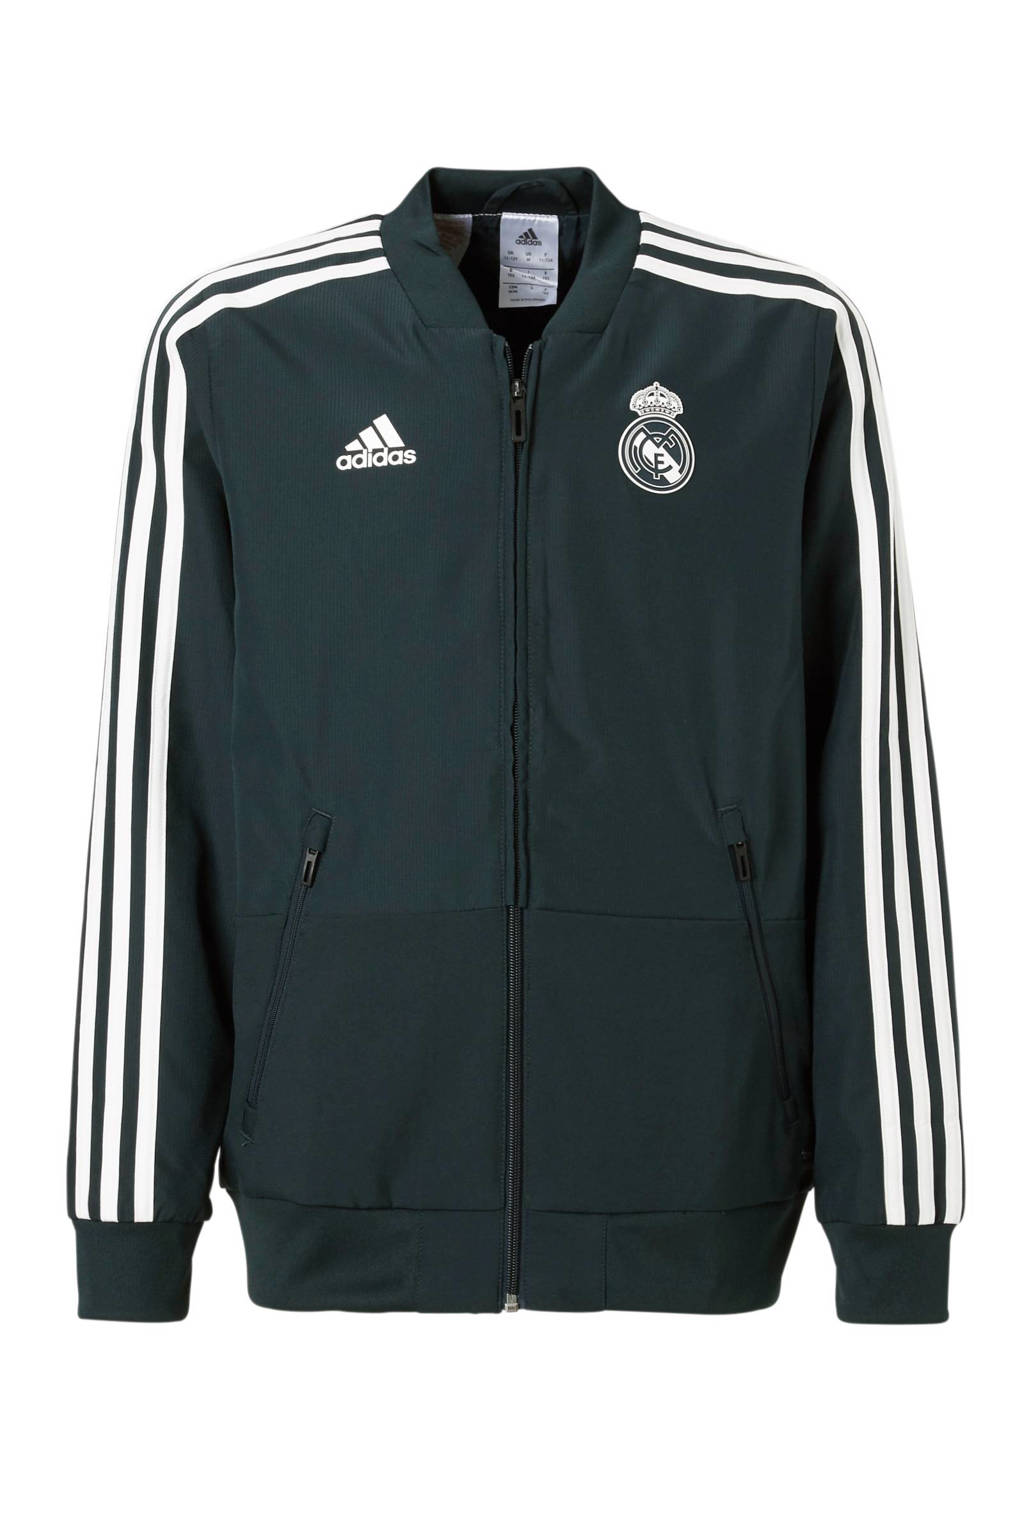 adidas performance Junior Real Madrid sportvest, Antraciet/wit